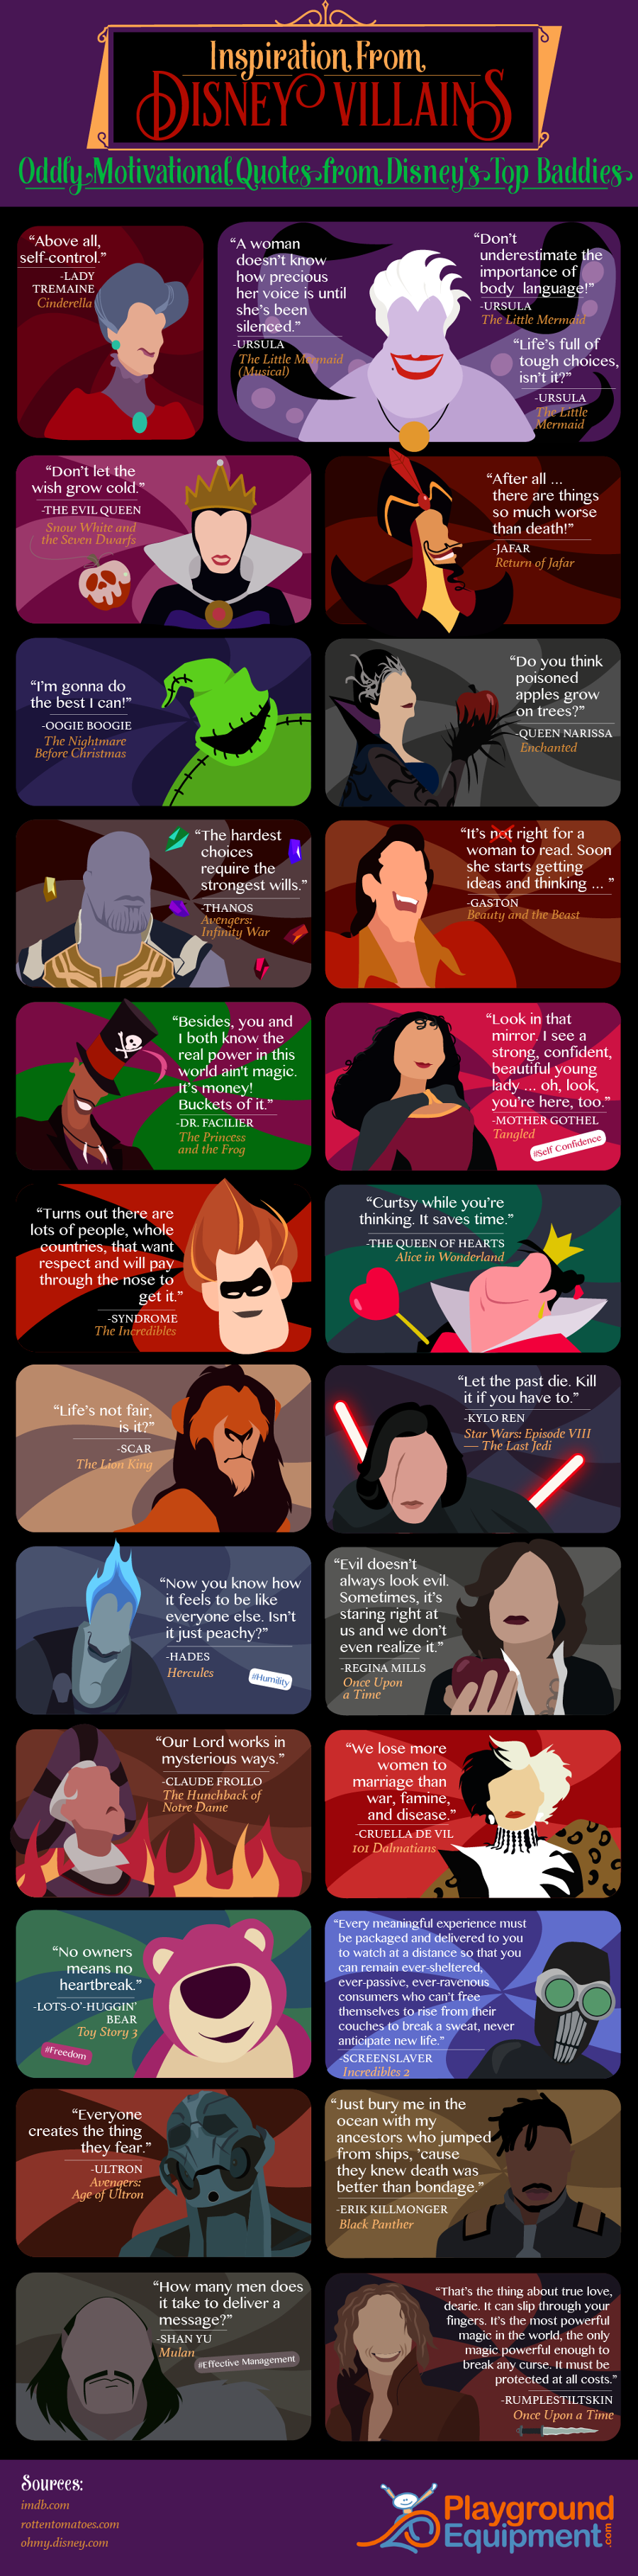 Inspiration from Disney Villains - PlaygroundEquipment.com - Infographic